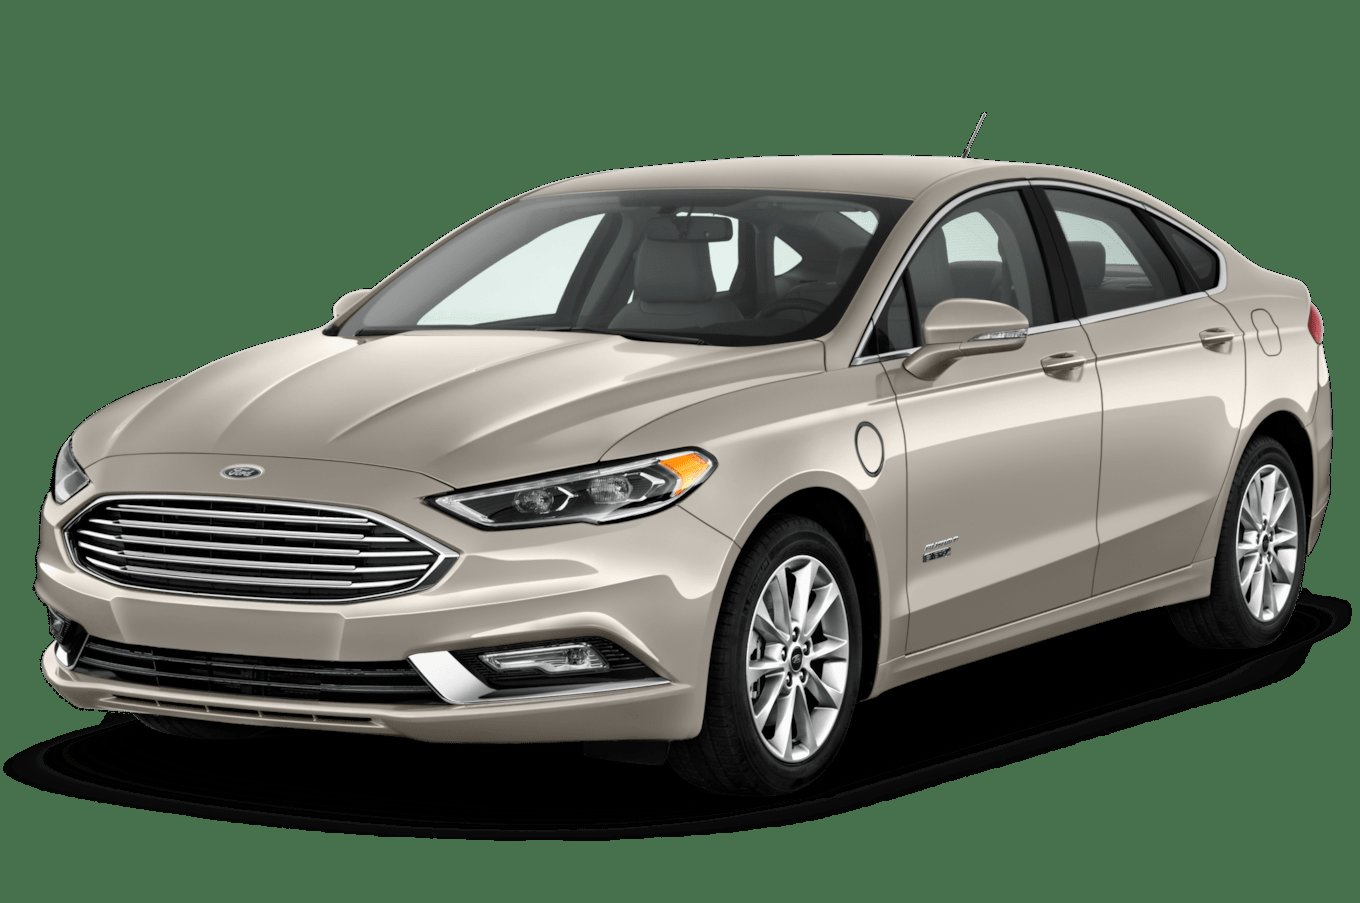 Latest Ford Cars Convertible Coupe Hatchback Sedan Suv Free Download